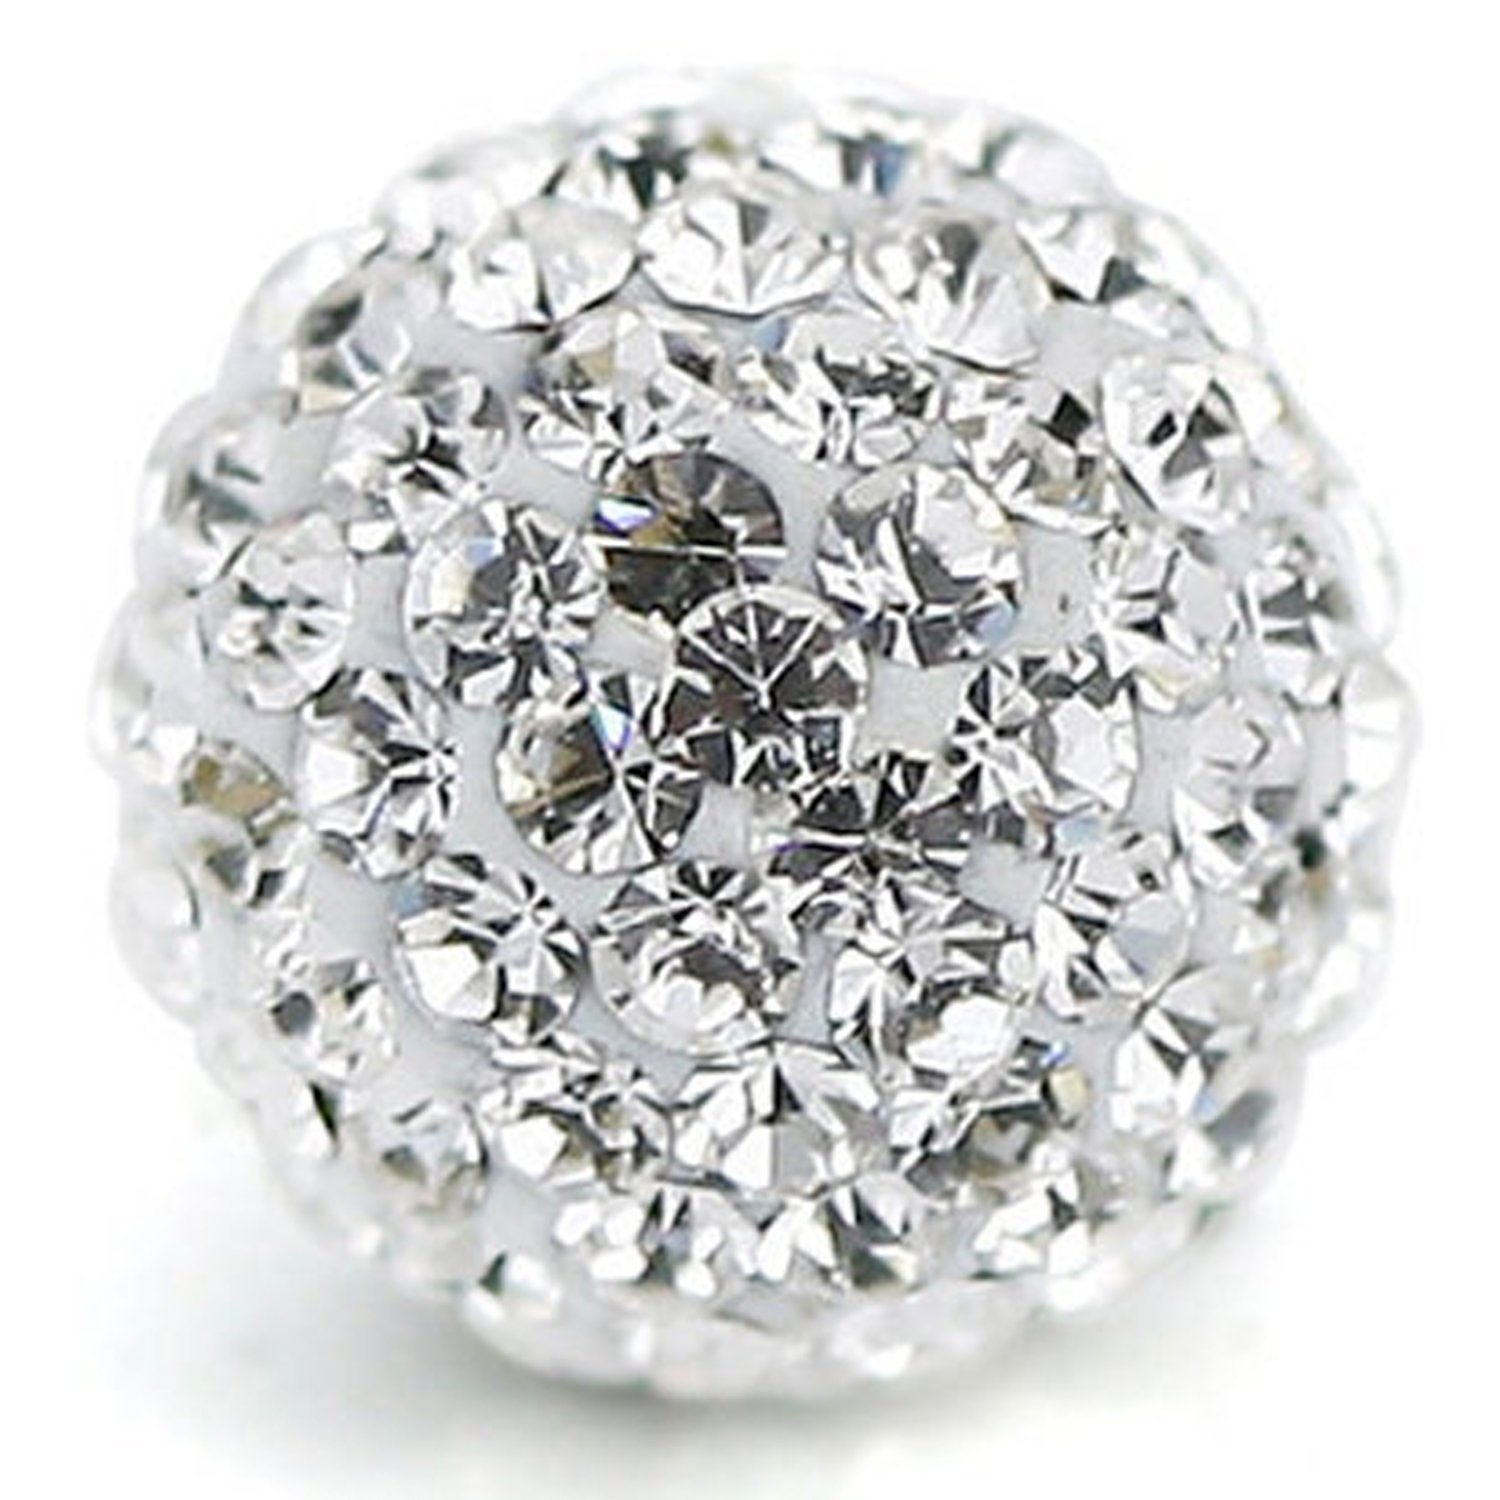 Beads & Jewelry Making Jewelry & Accessories Lovely 20pcs Mix Color Beads Jewelry Accessory Diy Shiny Czech Crystal Rhinestone Pave Clay Disco Ball Spacer Beads 2019 New Fashion Style Online